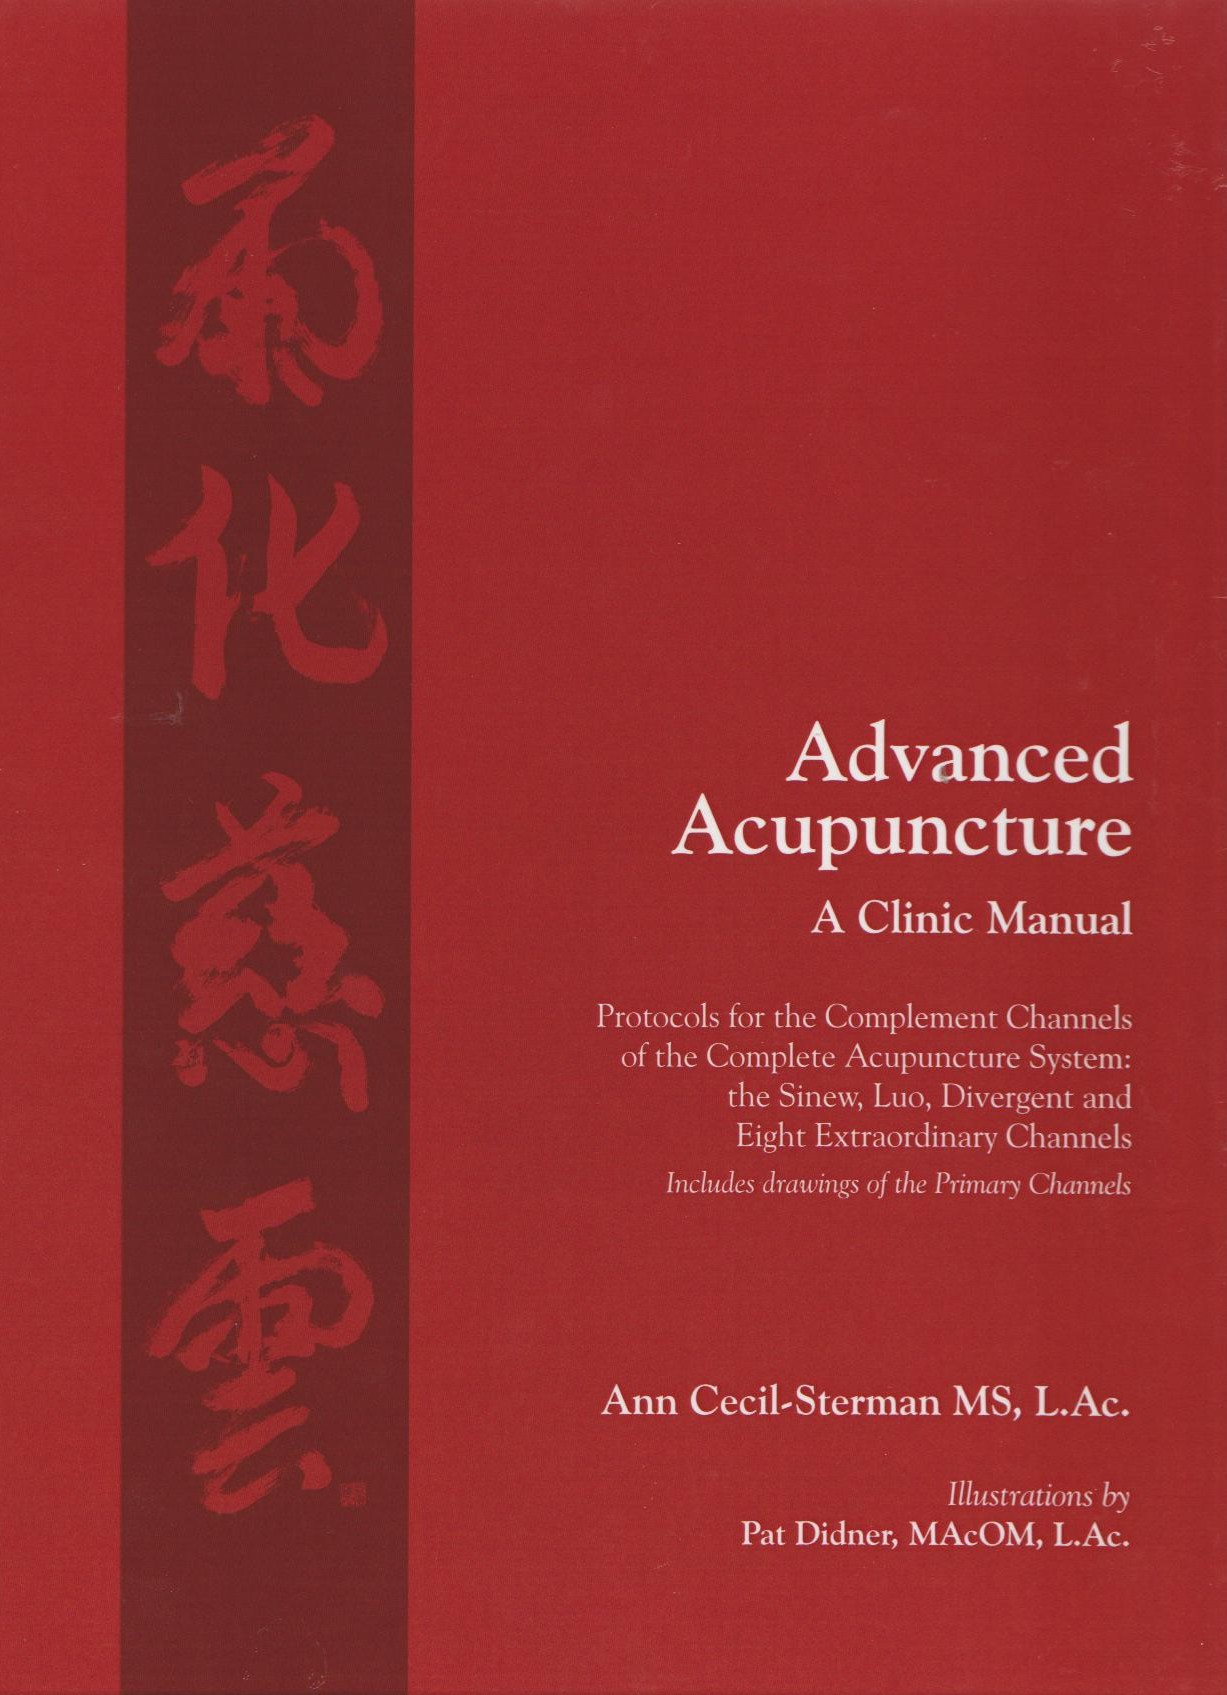 Advanced Acupuncture: A Clinic Manual